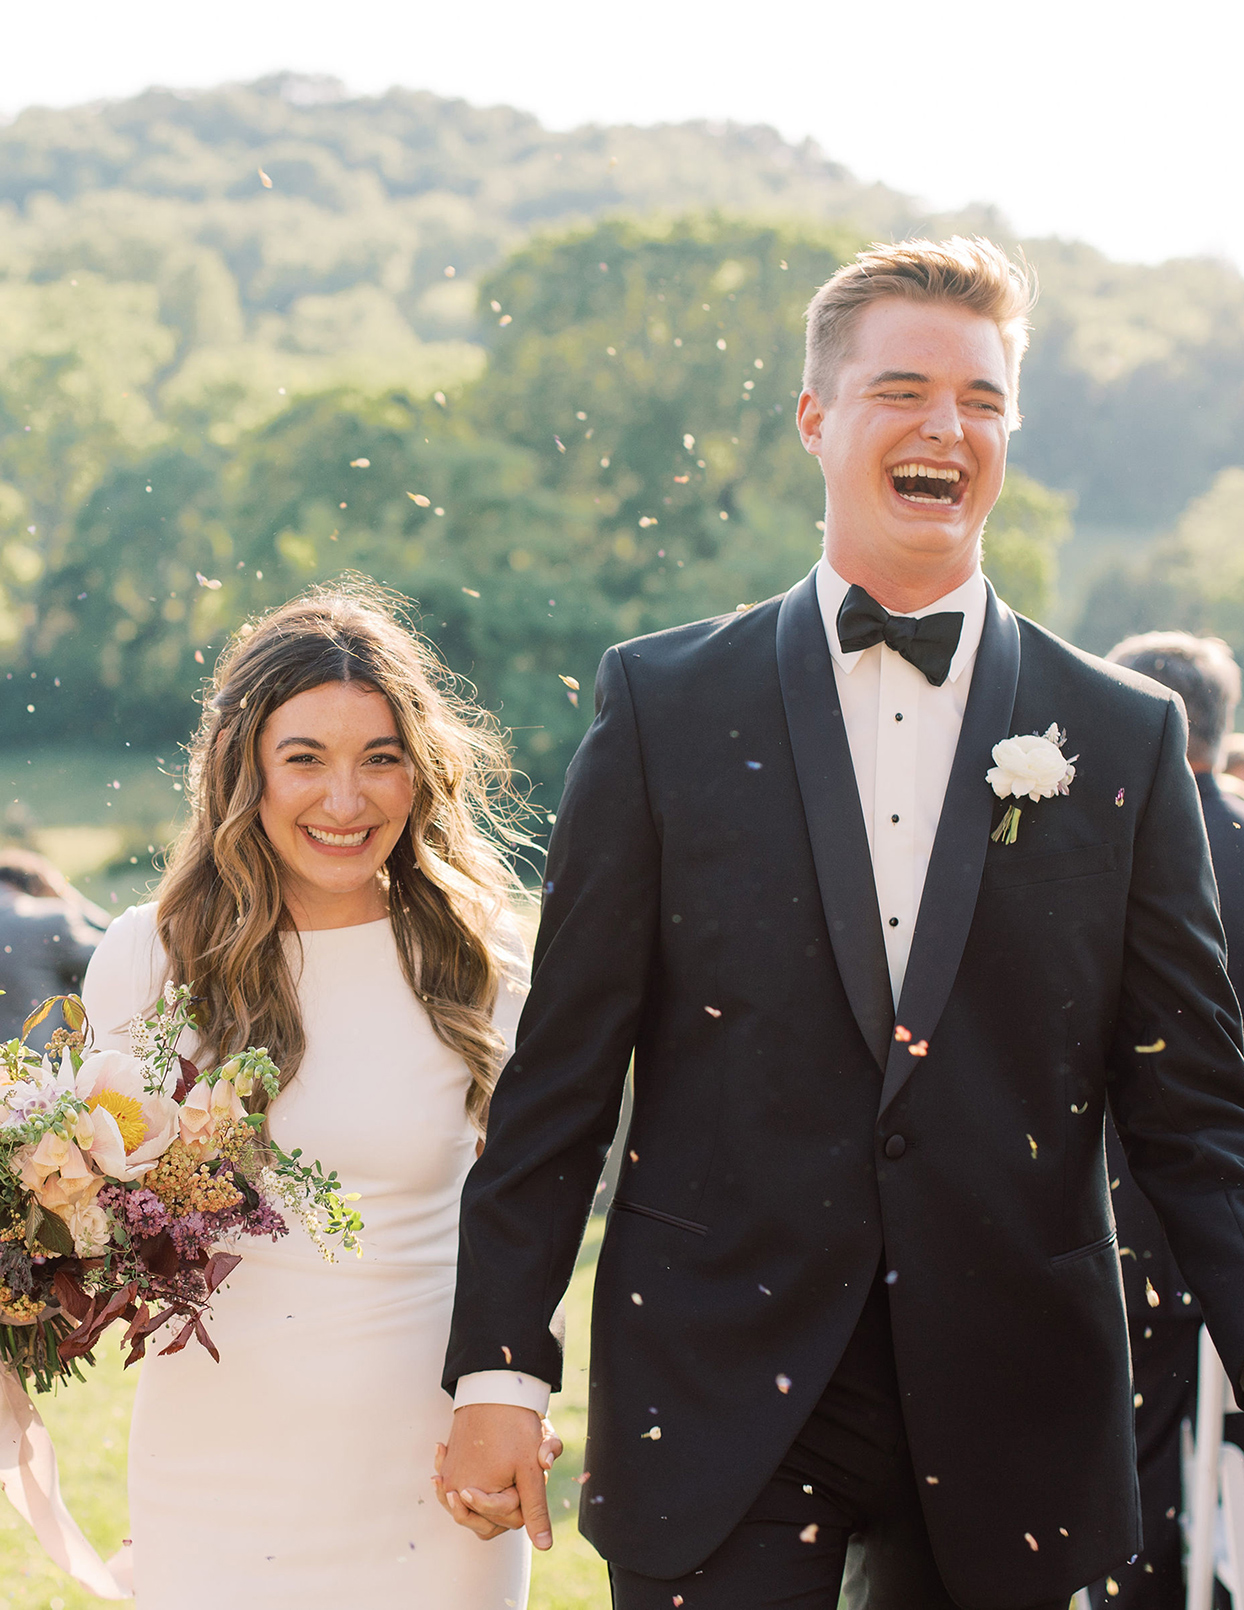 julia doug wedding recessional confetti